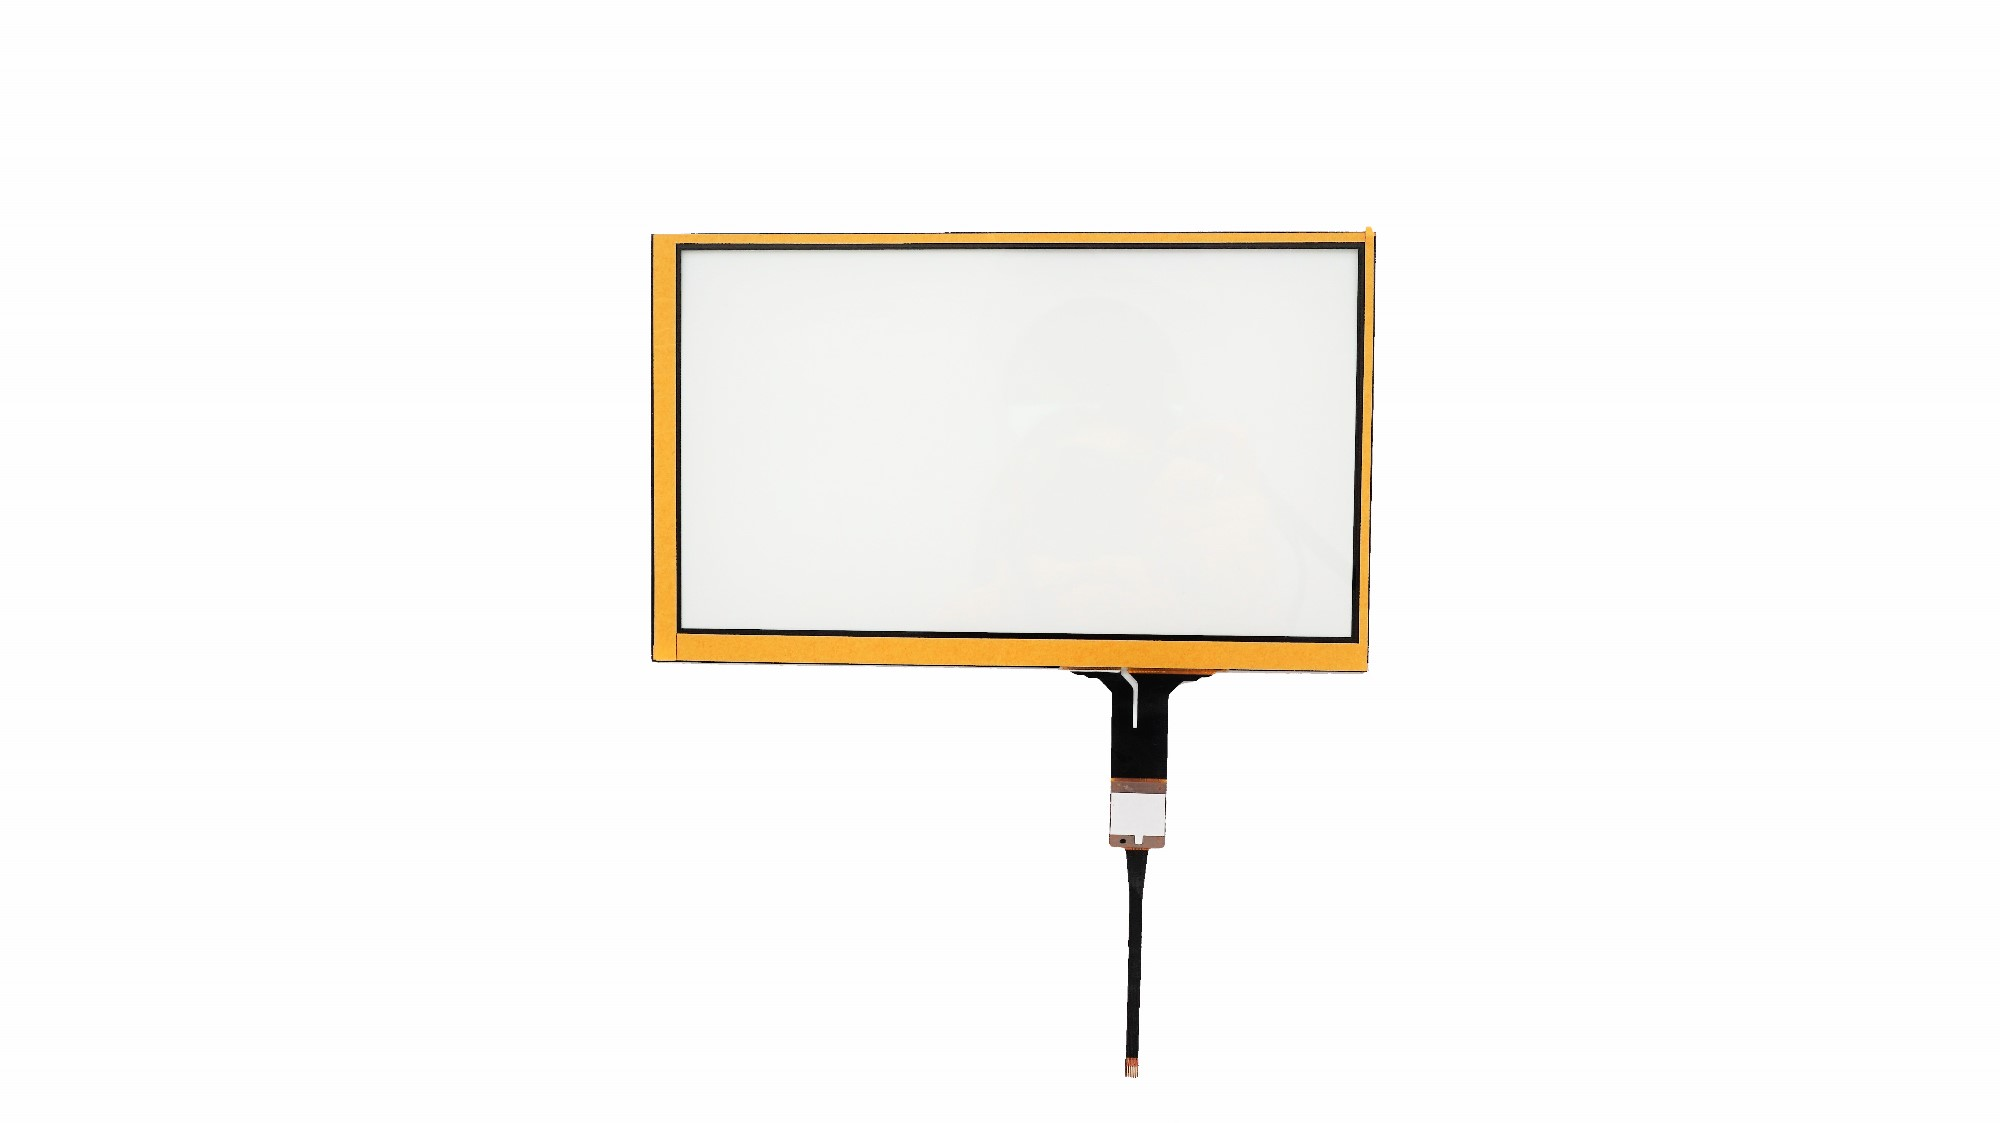 Custom China Infrared Multi Touch 8.0 Inch Capacitive Screen Panel, Infrared Multi Touch 8.0 Inch Capacitive Screen Panel Factory, Infrared Multi Touch 8.0 Inch Capacitive Screen Panel OEM